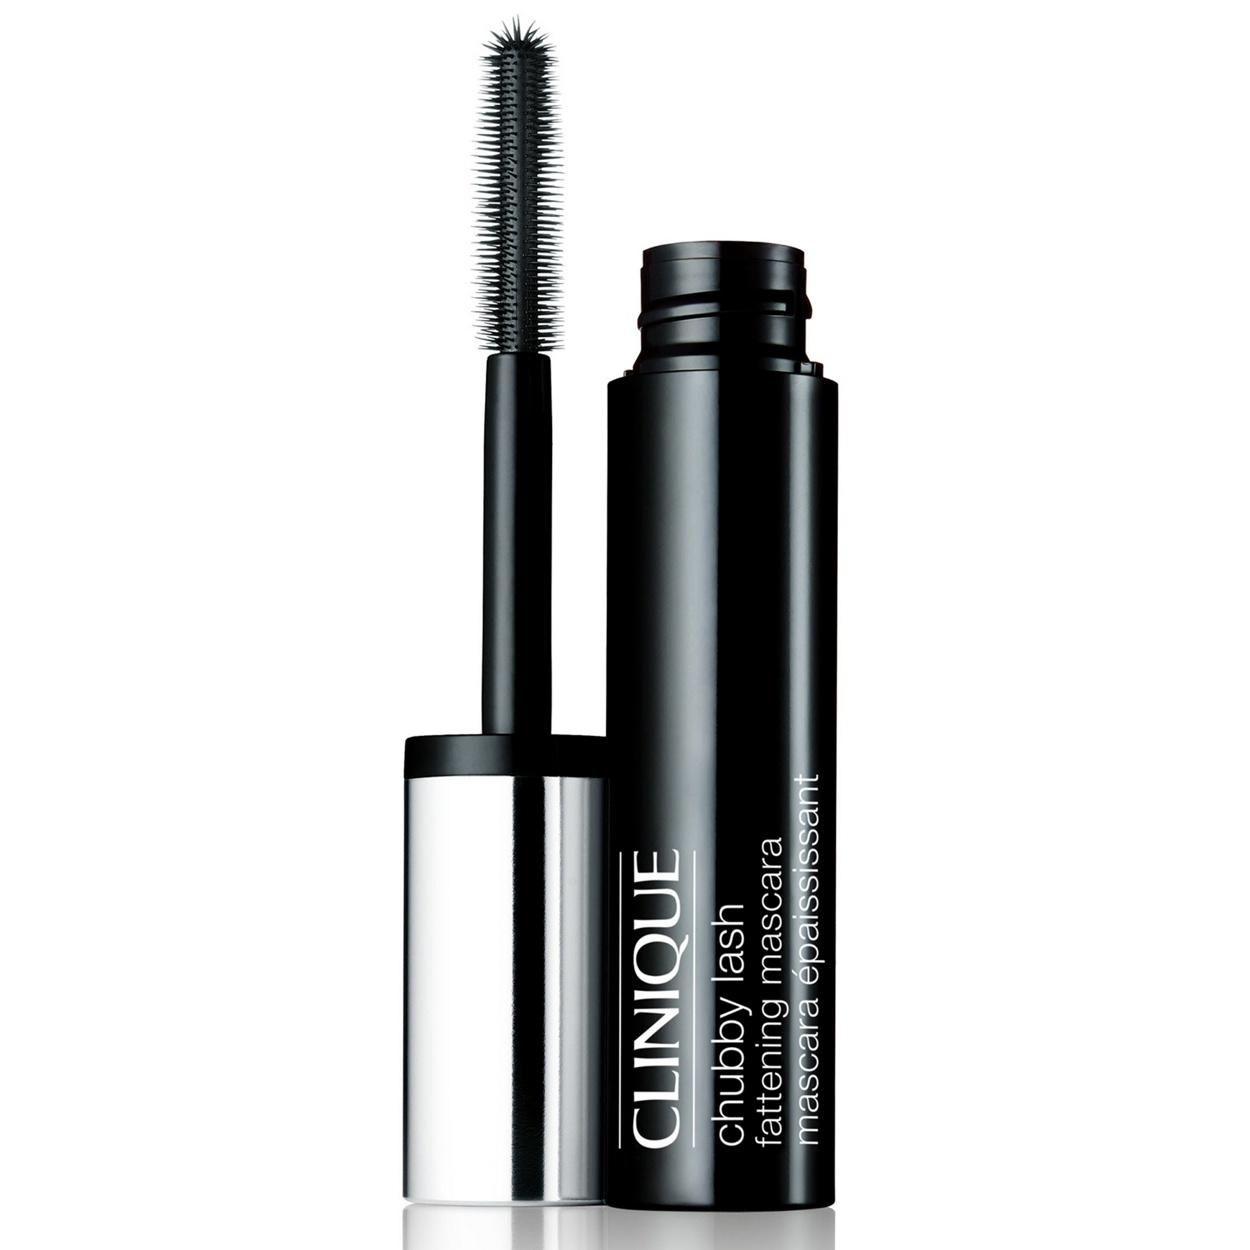 Image of Clinique Chubby Lash Fattening - Mascara Black 0020714784201